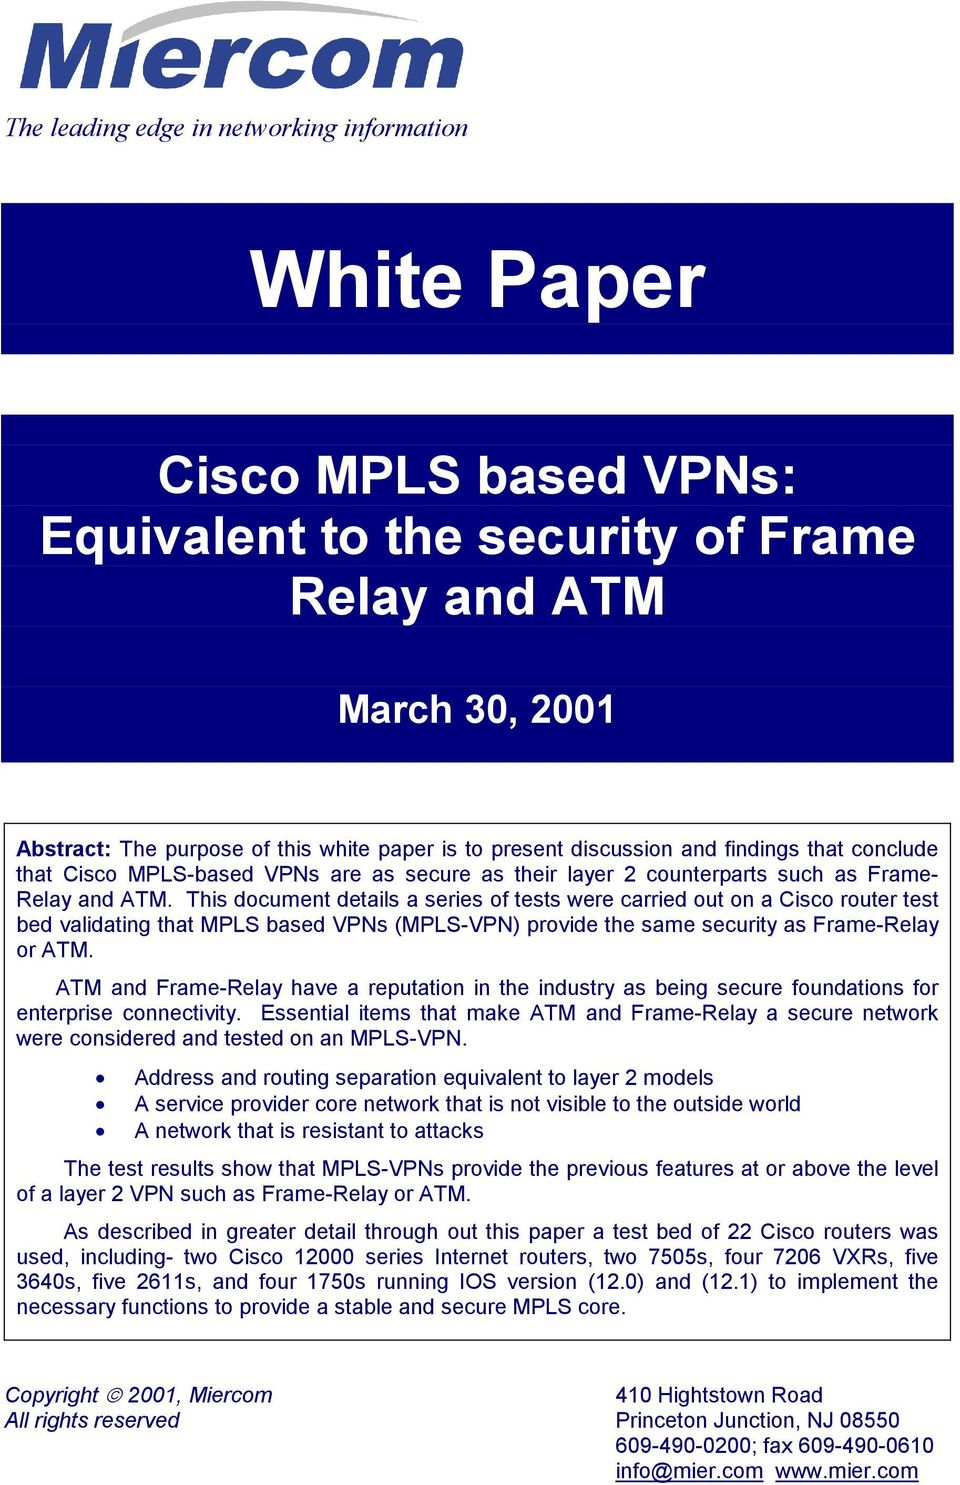 This document details a series of tests were carried out on a Cisco router test bed validating that MPLS based VPNs (MPLS-VPN) provide the same security as Frame-Relay or ATM.